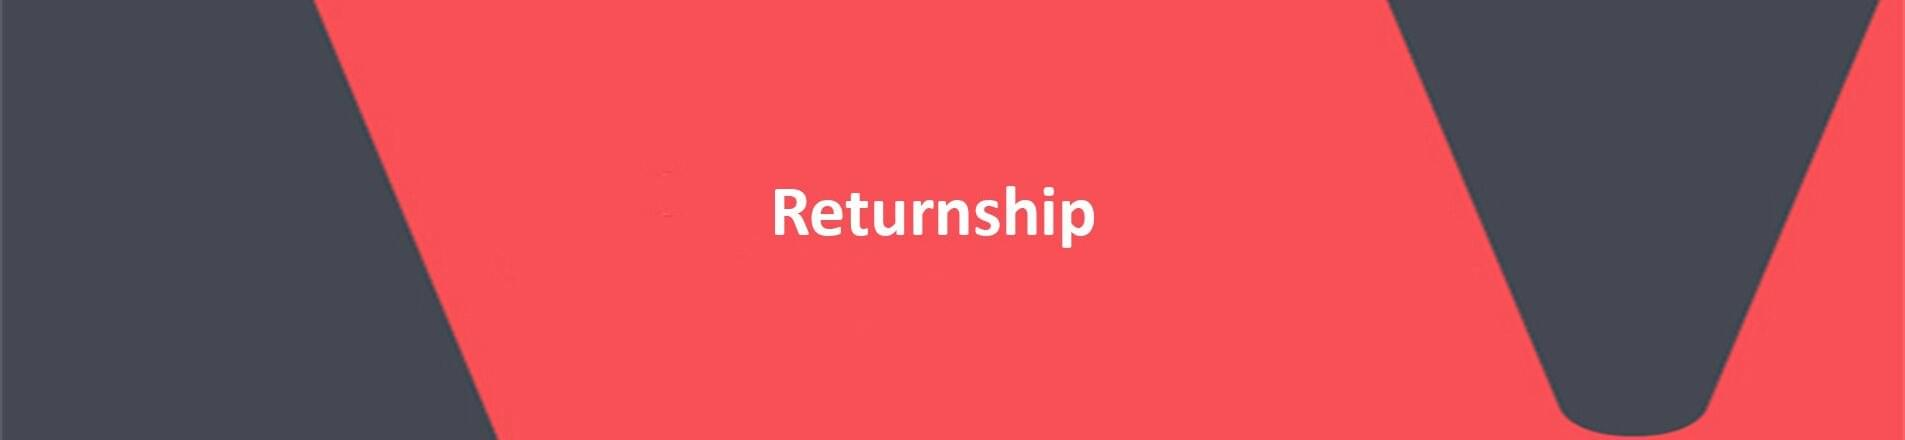 The word 'Returnship' on red VERCIDA background